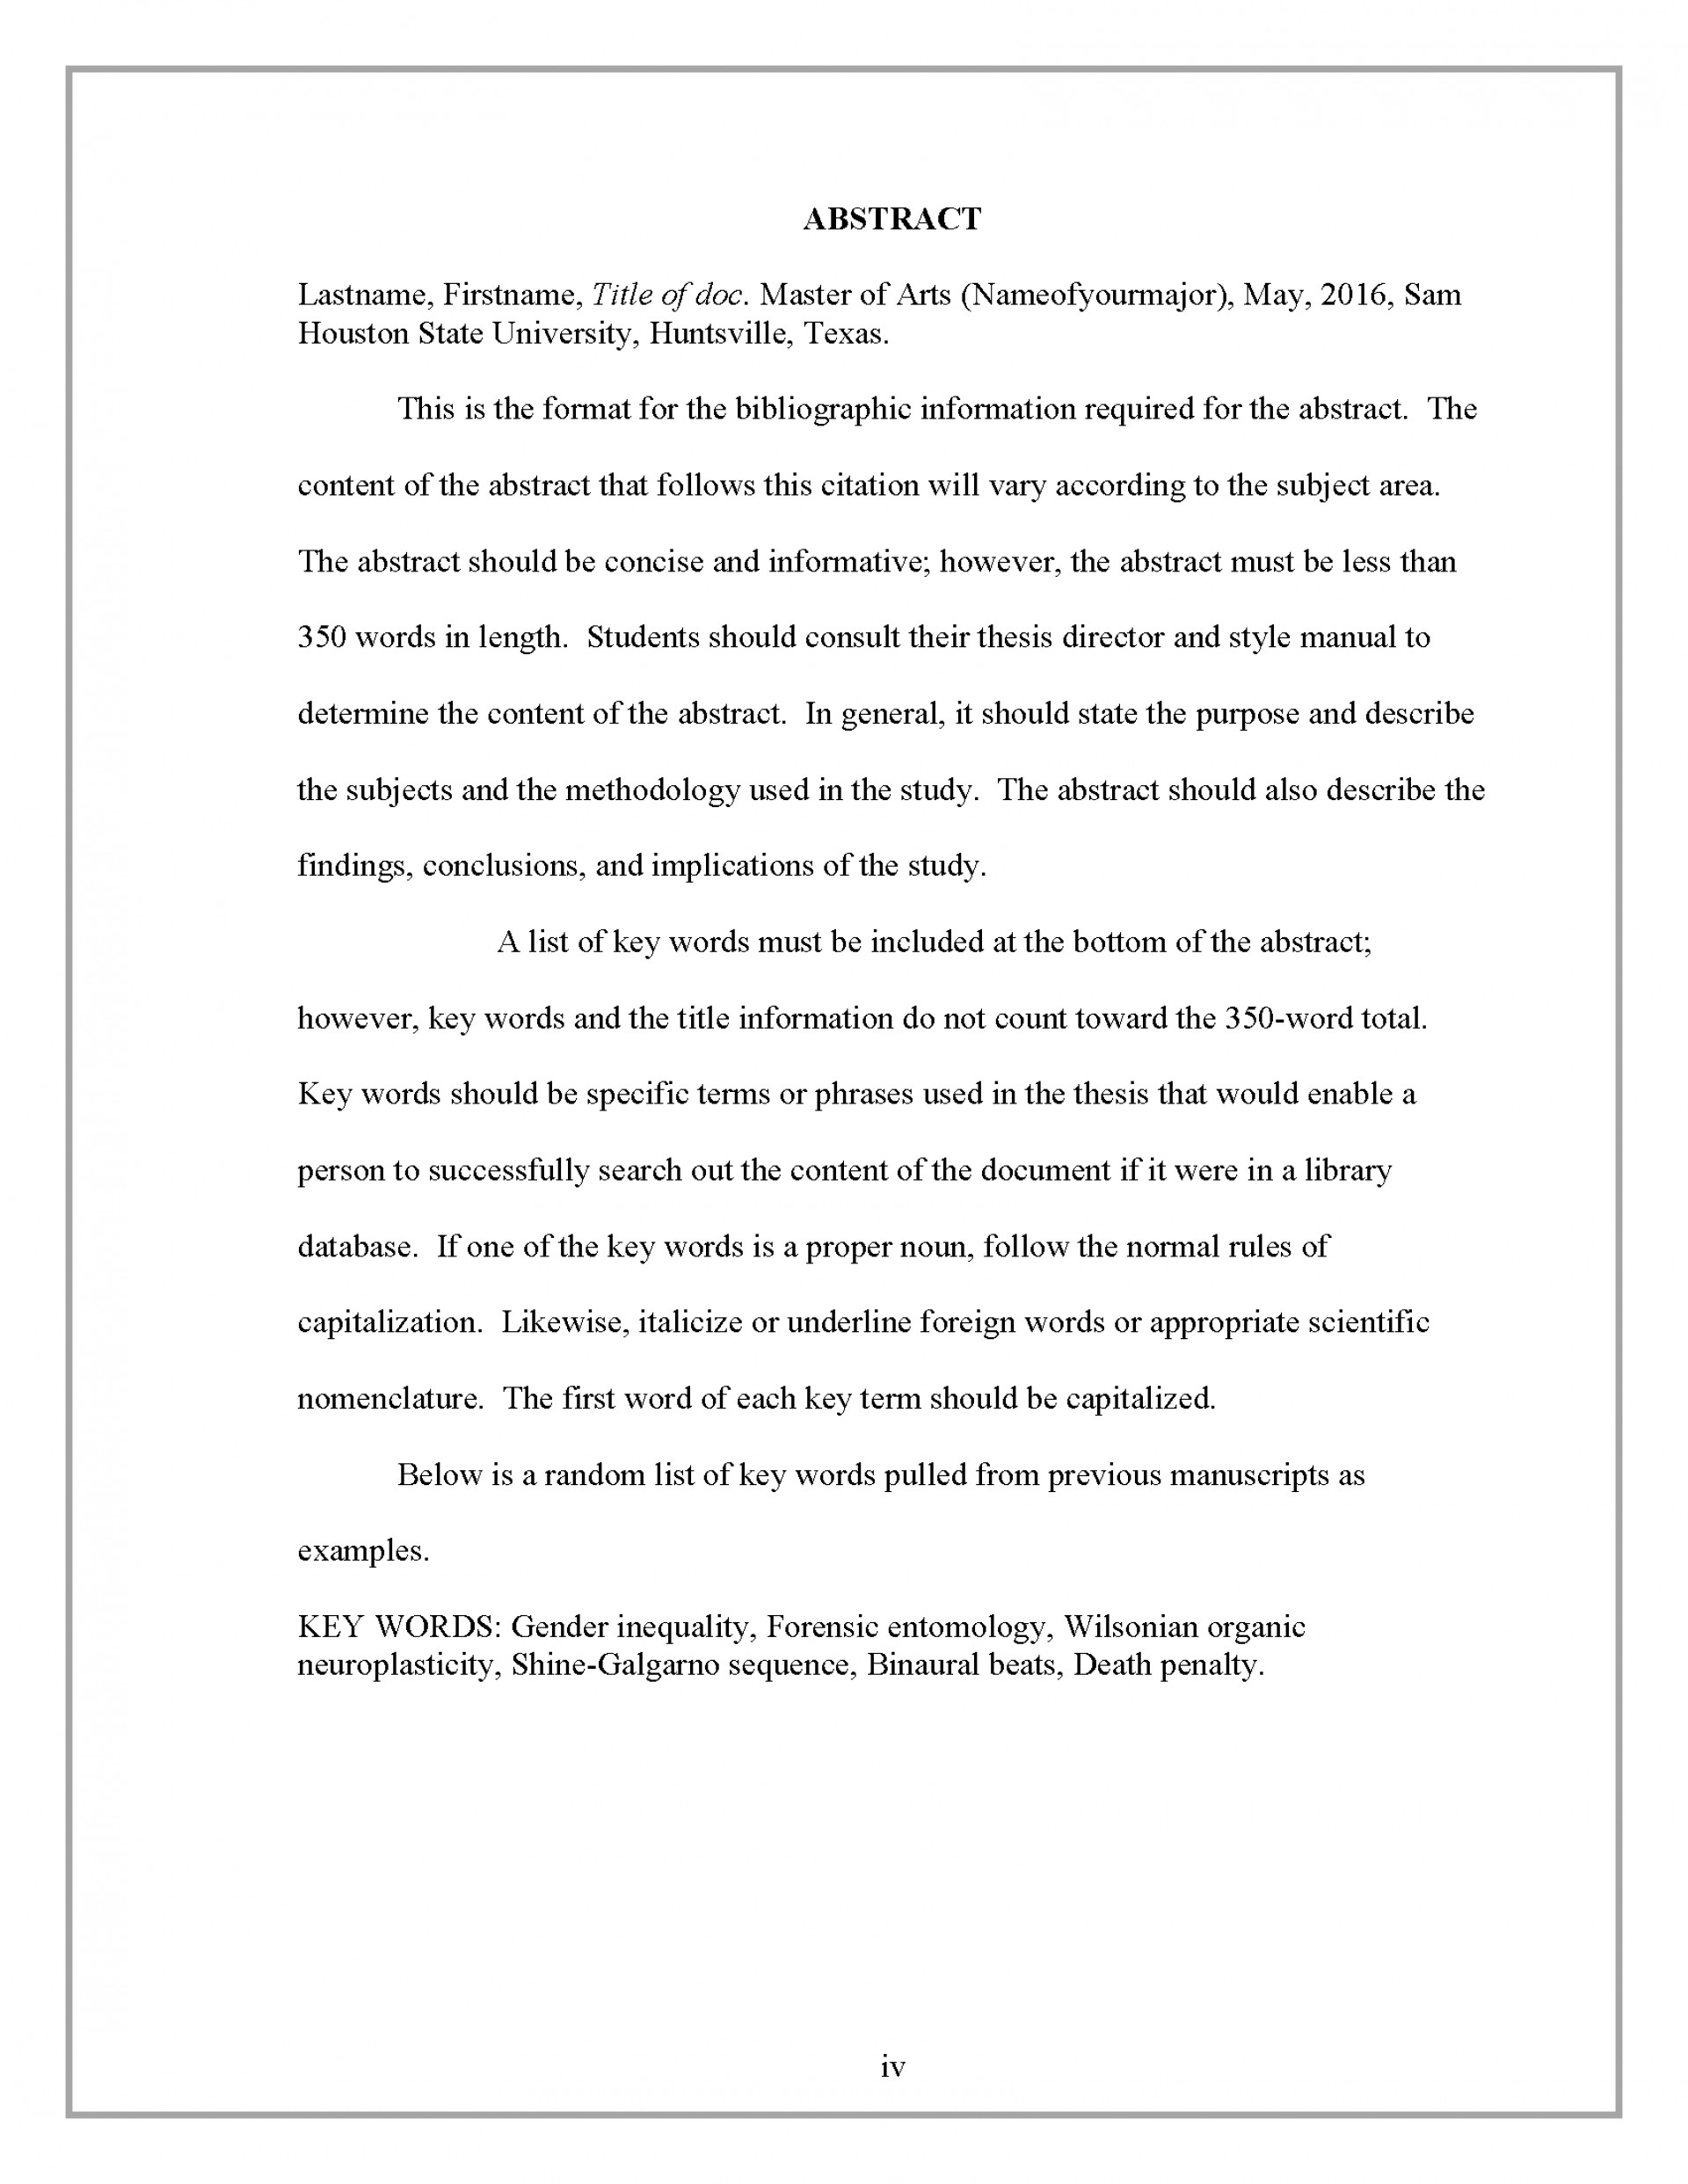 001 Business Abstract Example Border Research Wonderful Plan Proposal 1920